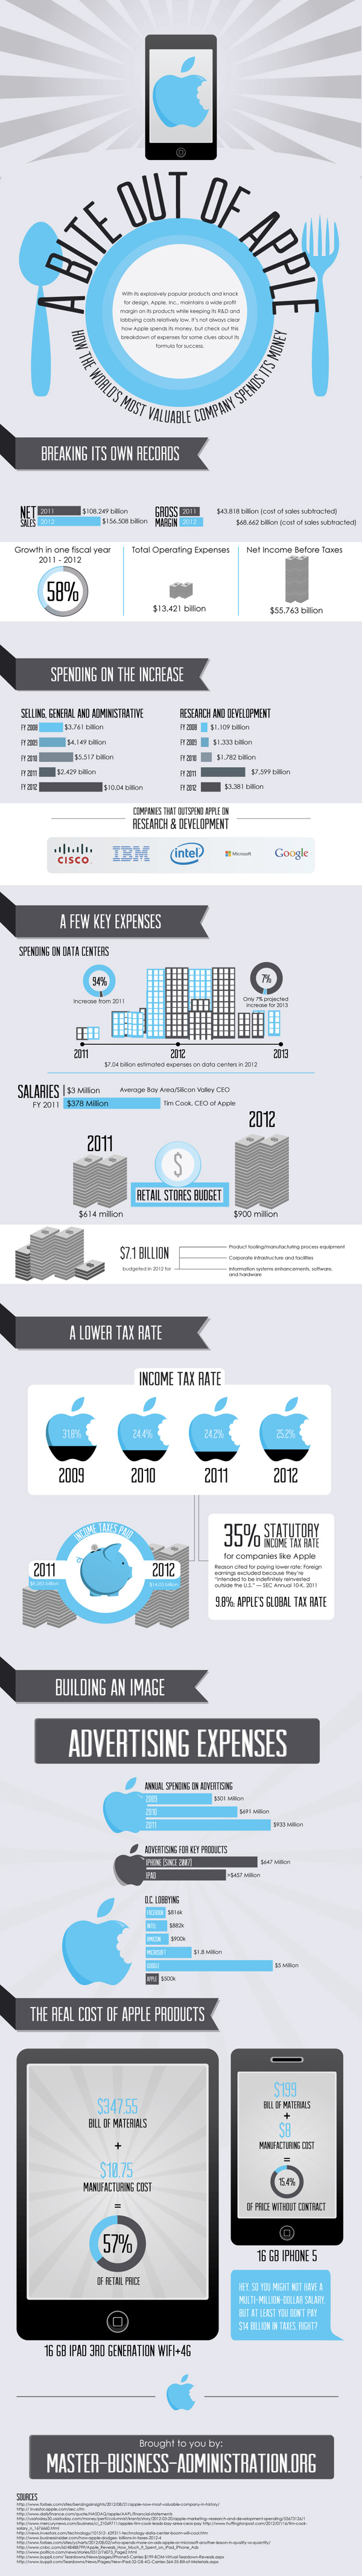 bite-out-of-apple-infographie